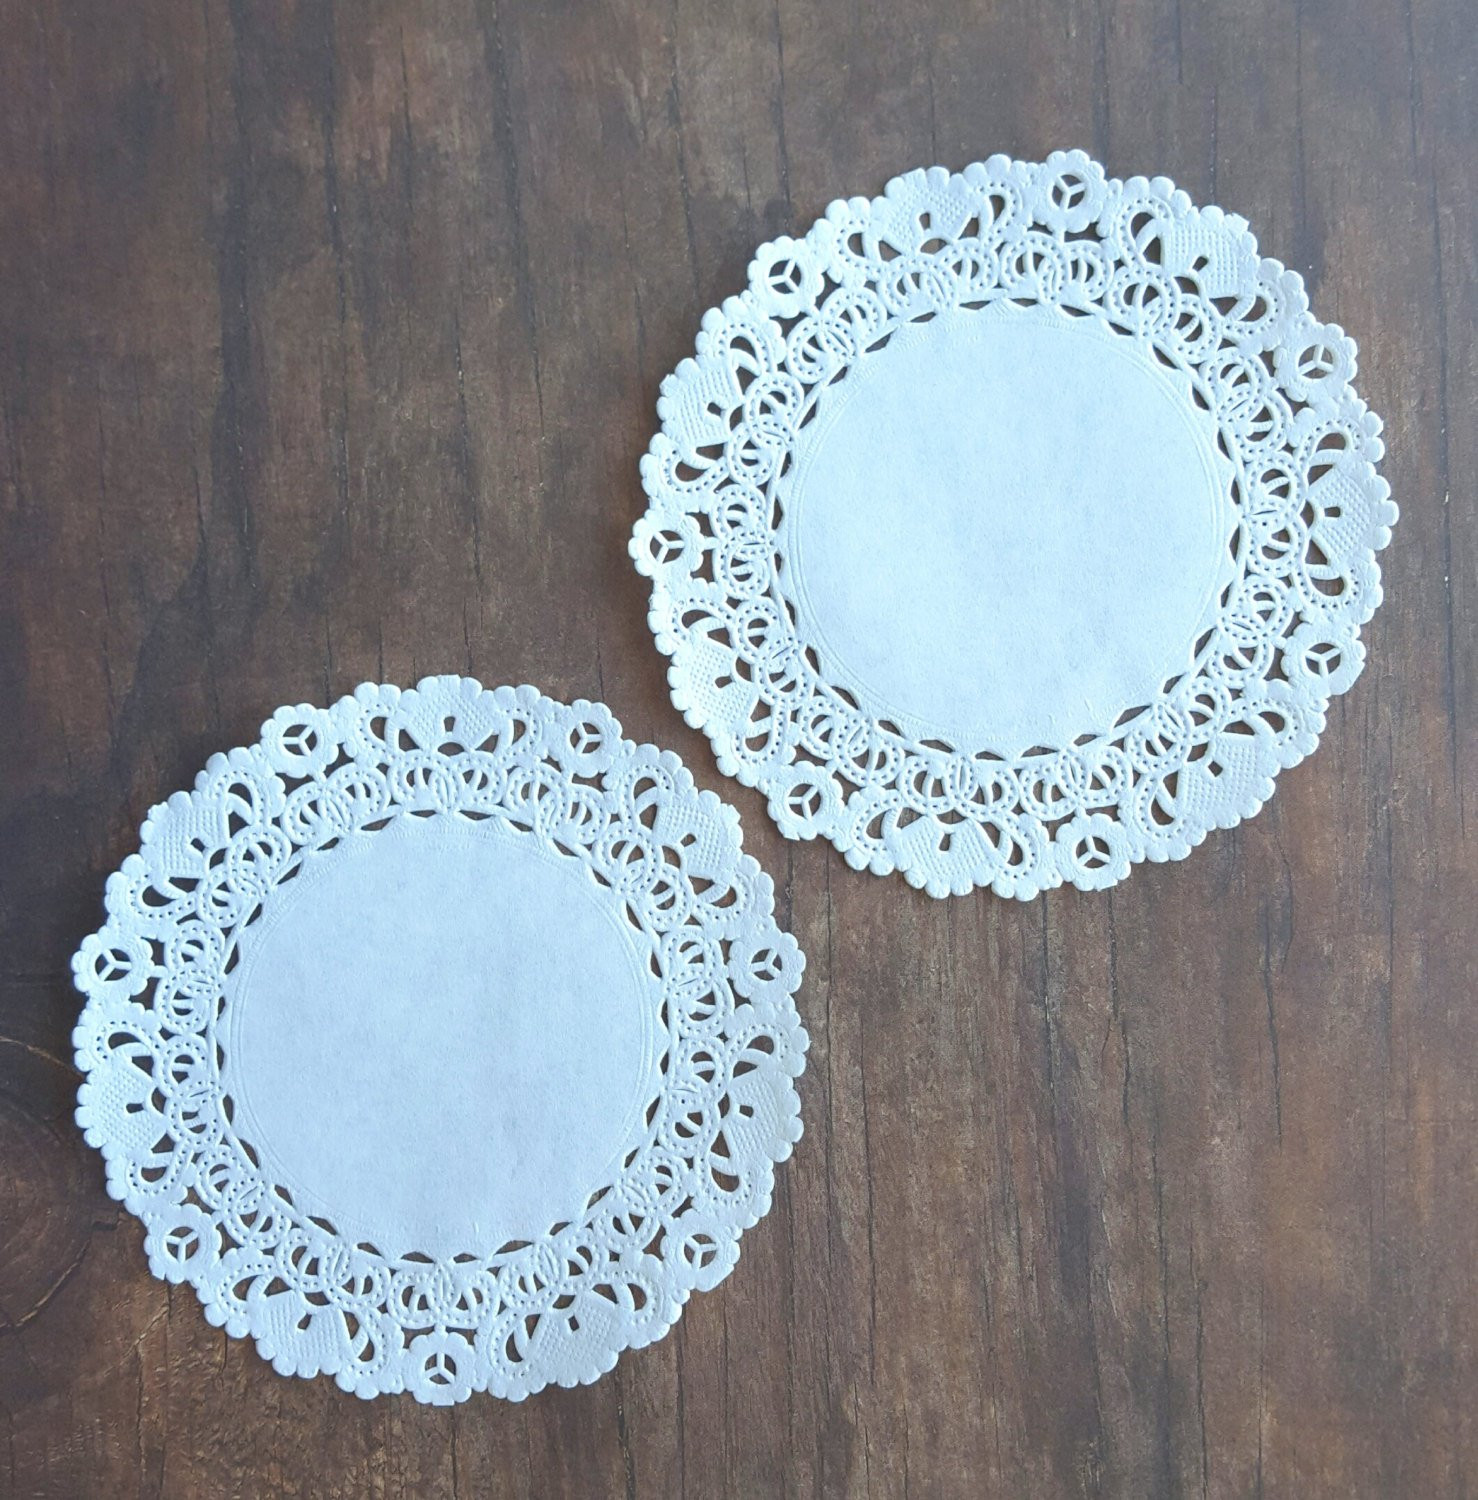 Paper Doilies New 100 French Lace Round Paper Doilies 4 Inch White Doily 4 Of Gorgeous 42 Pics Paper Doilies